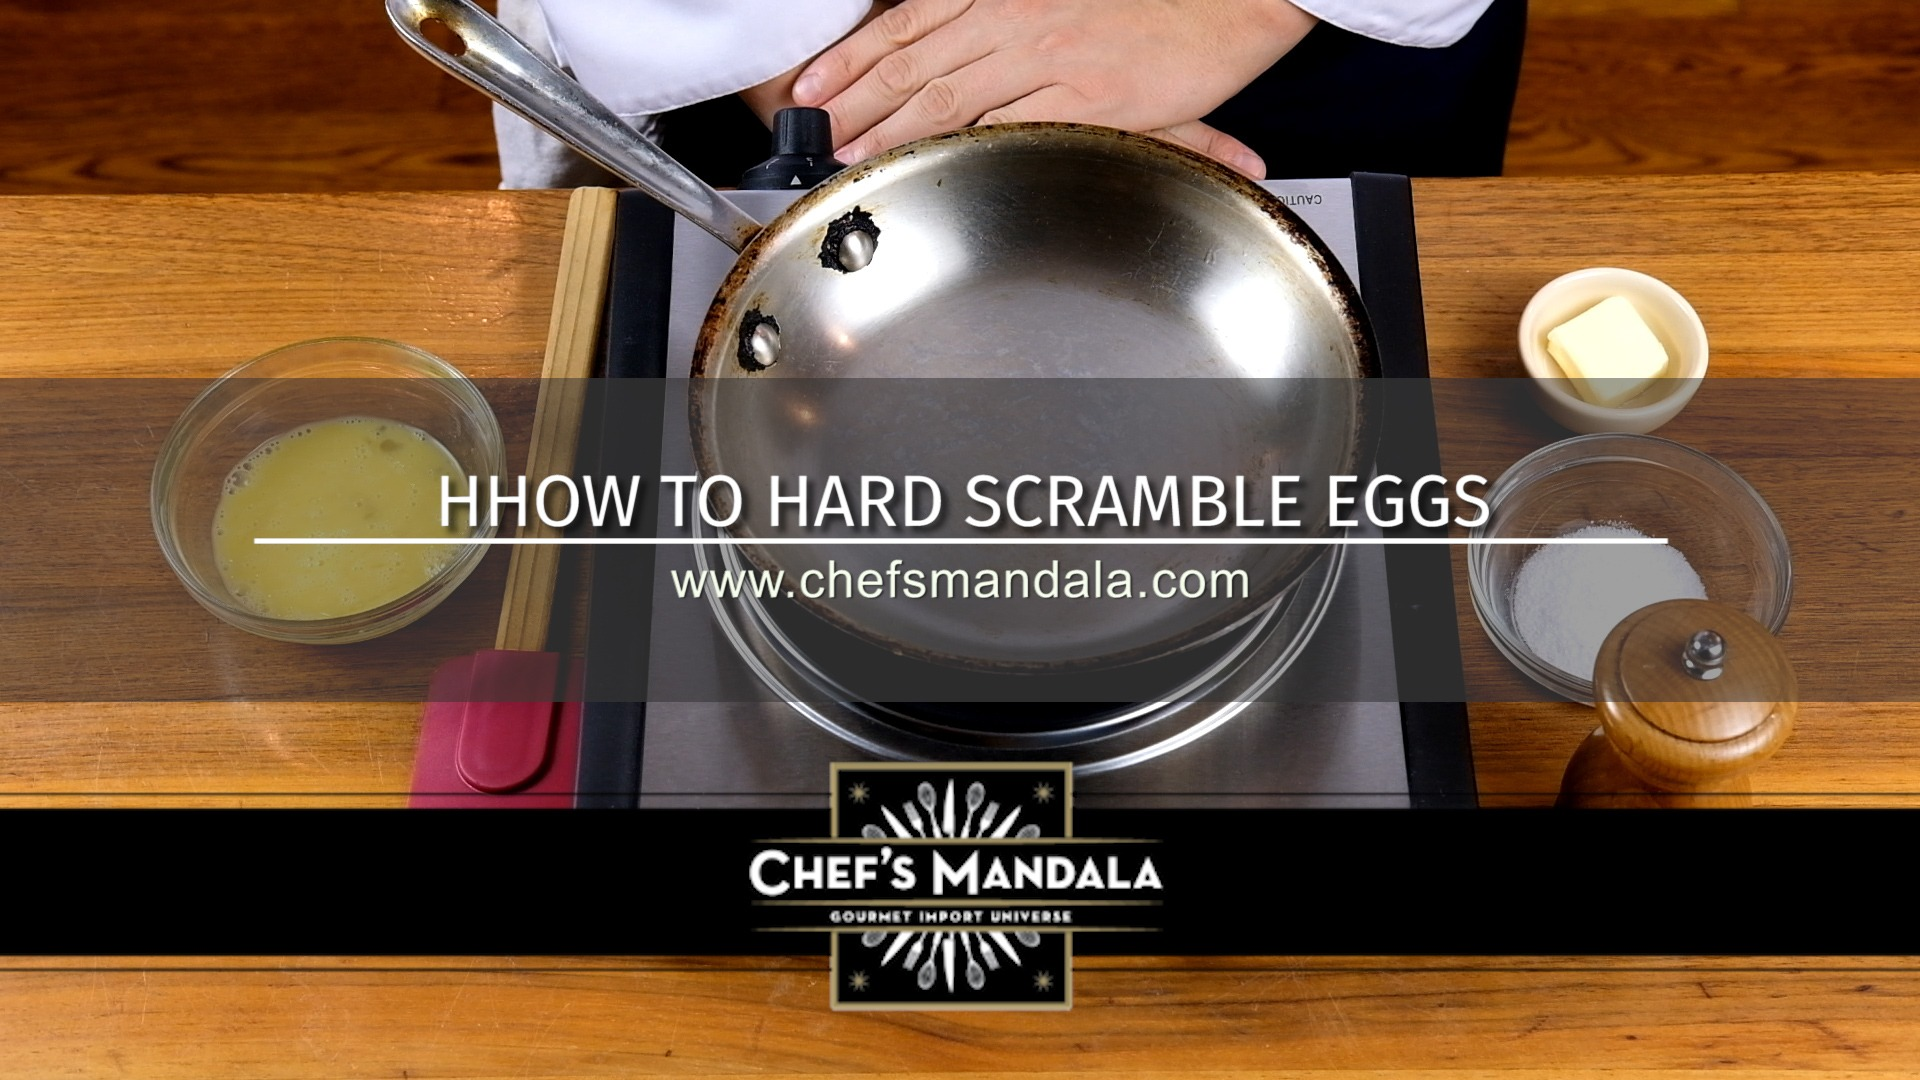 HOW TO HARD SCRAMBLE EGGS